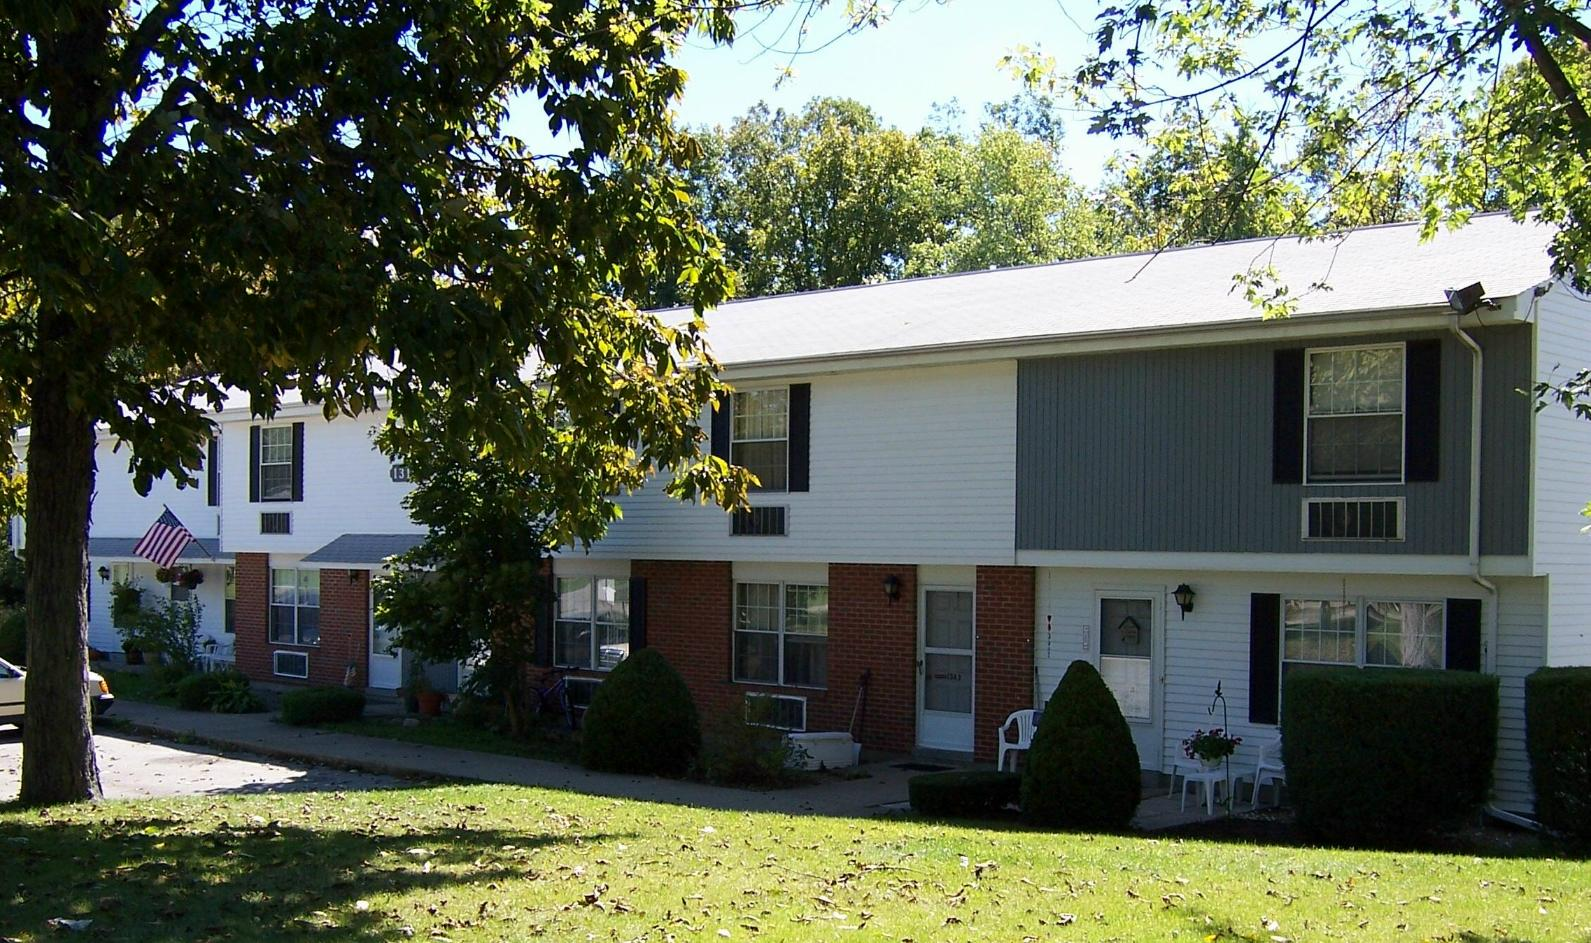 3 bedroom townhouse meadville housing corporation for 3 bedroom townhomes